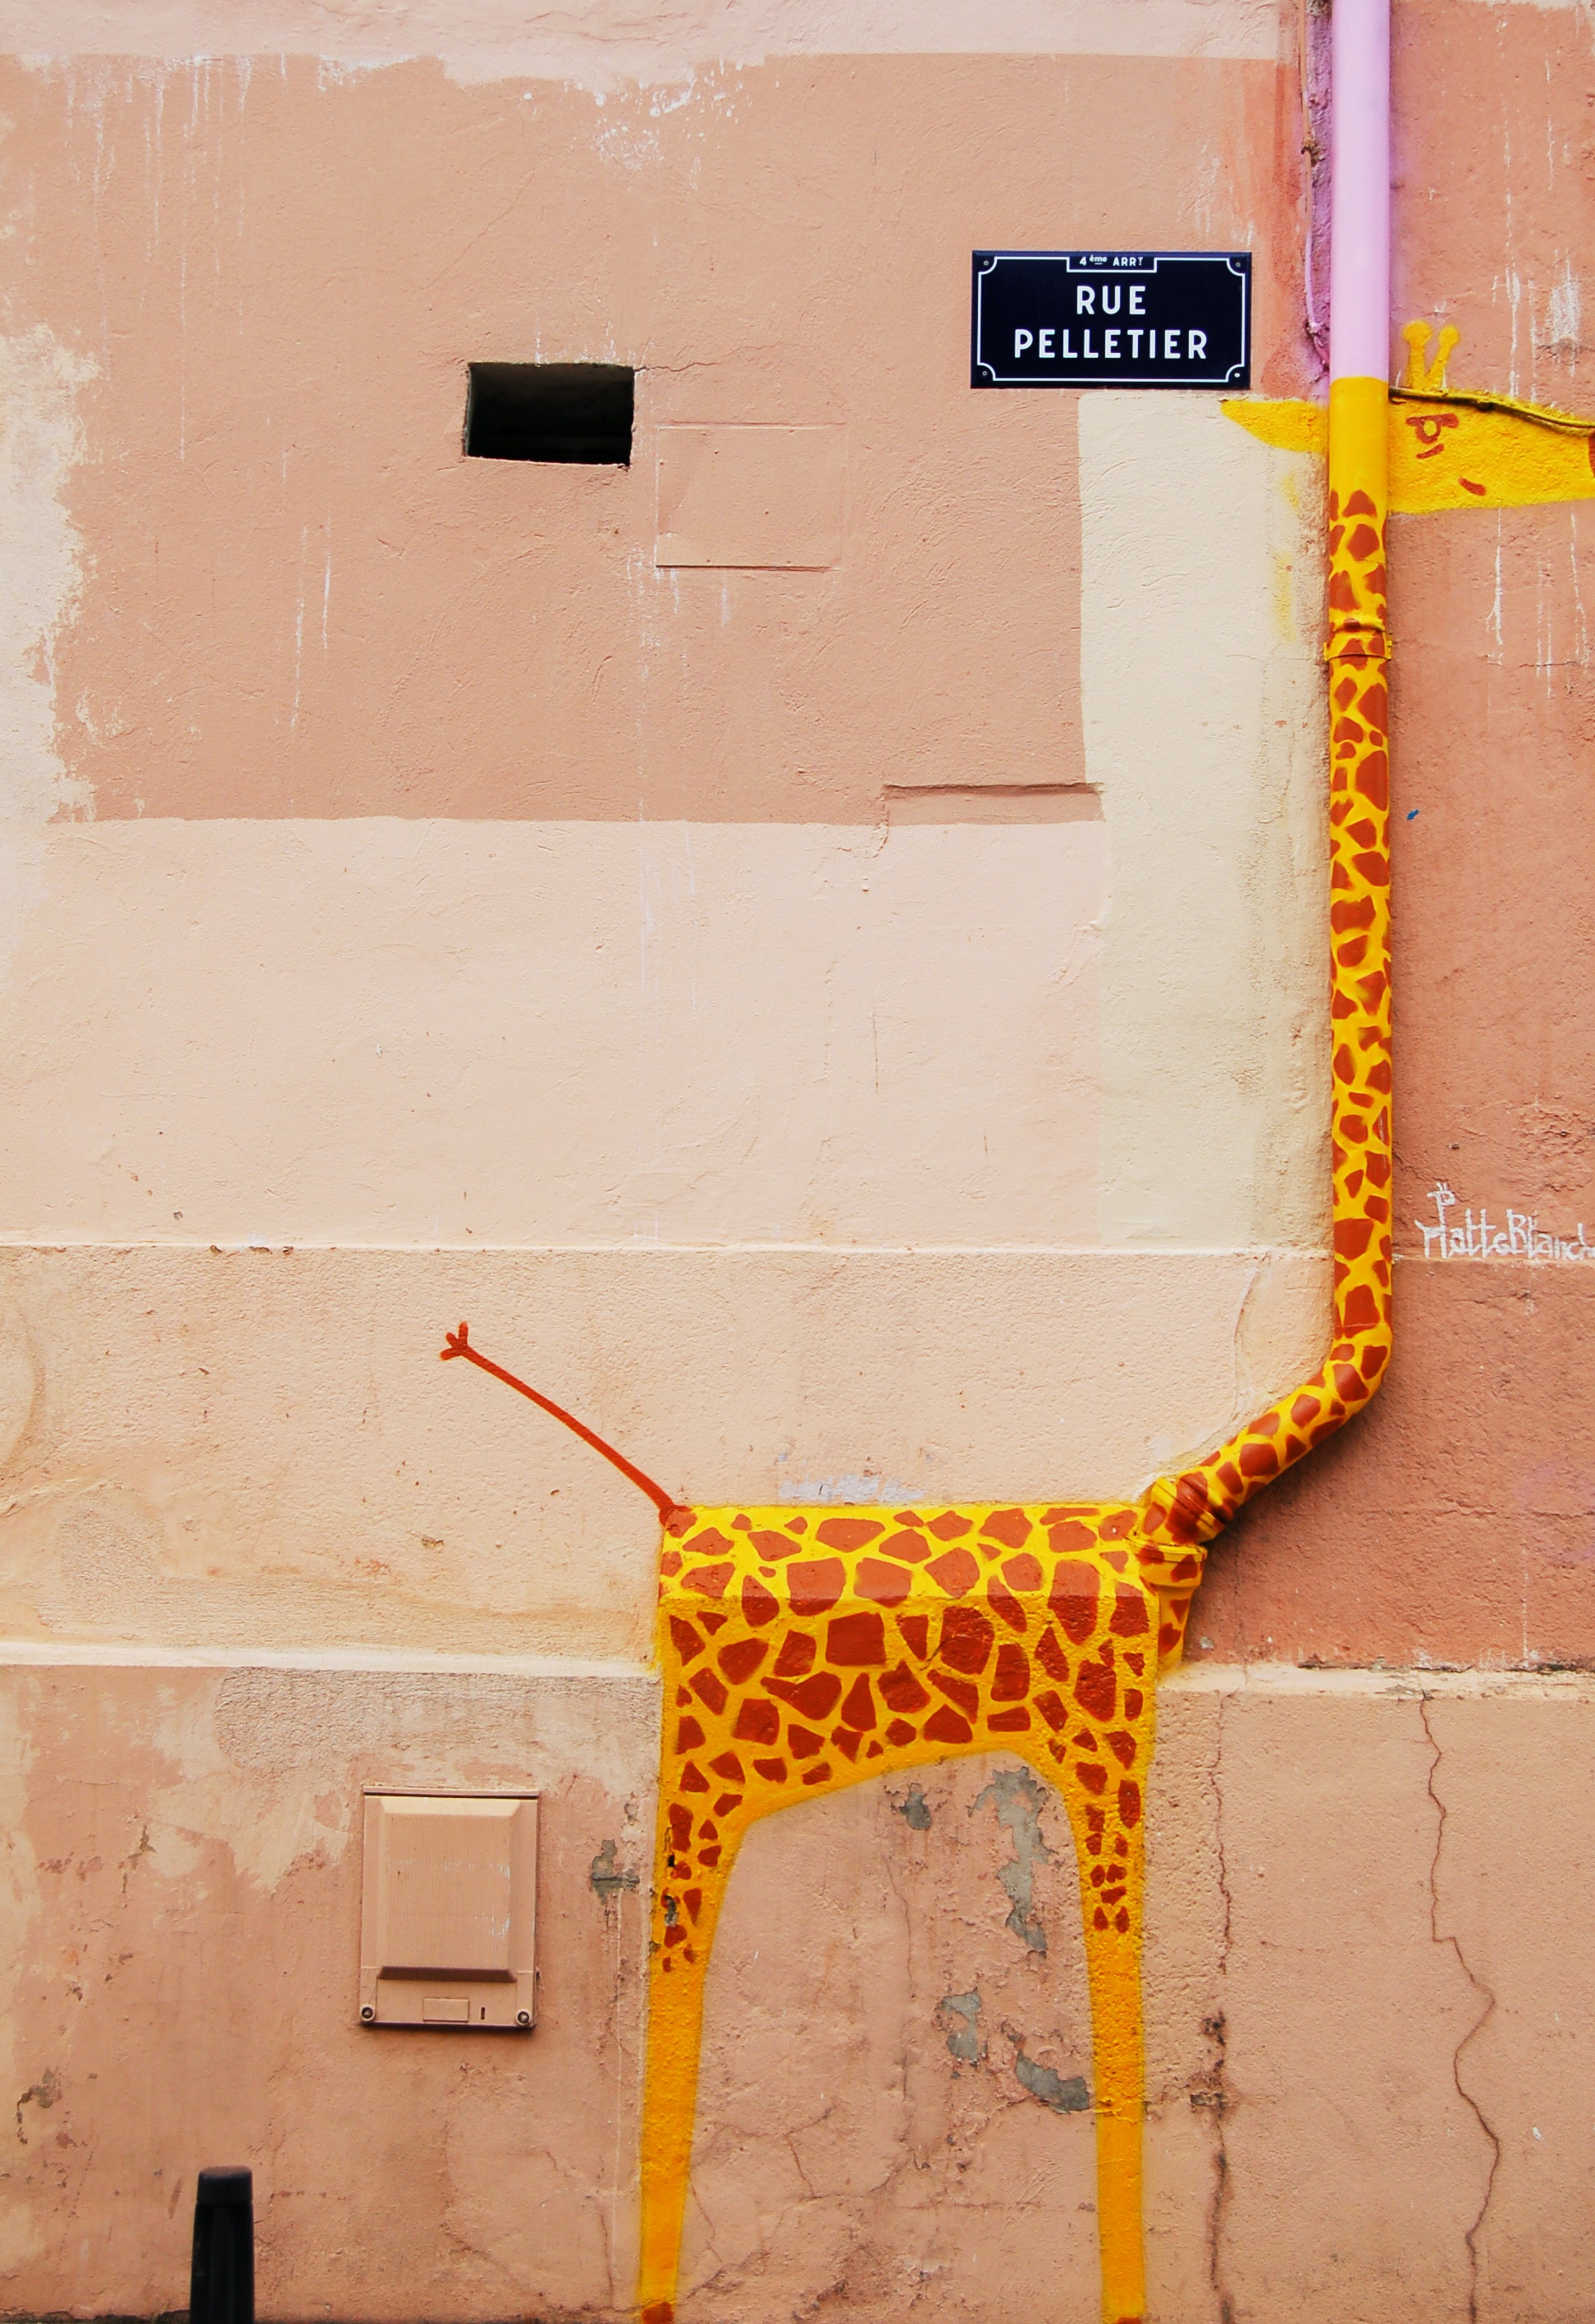 Giraffe graffiti artwork painted on drainpipe with street sign, Wall street art in a public place